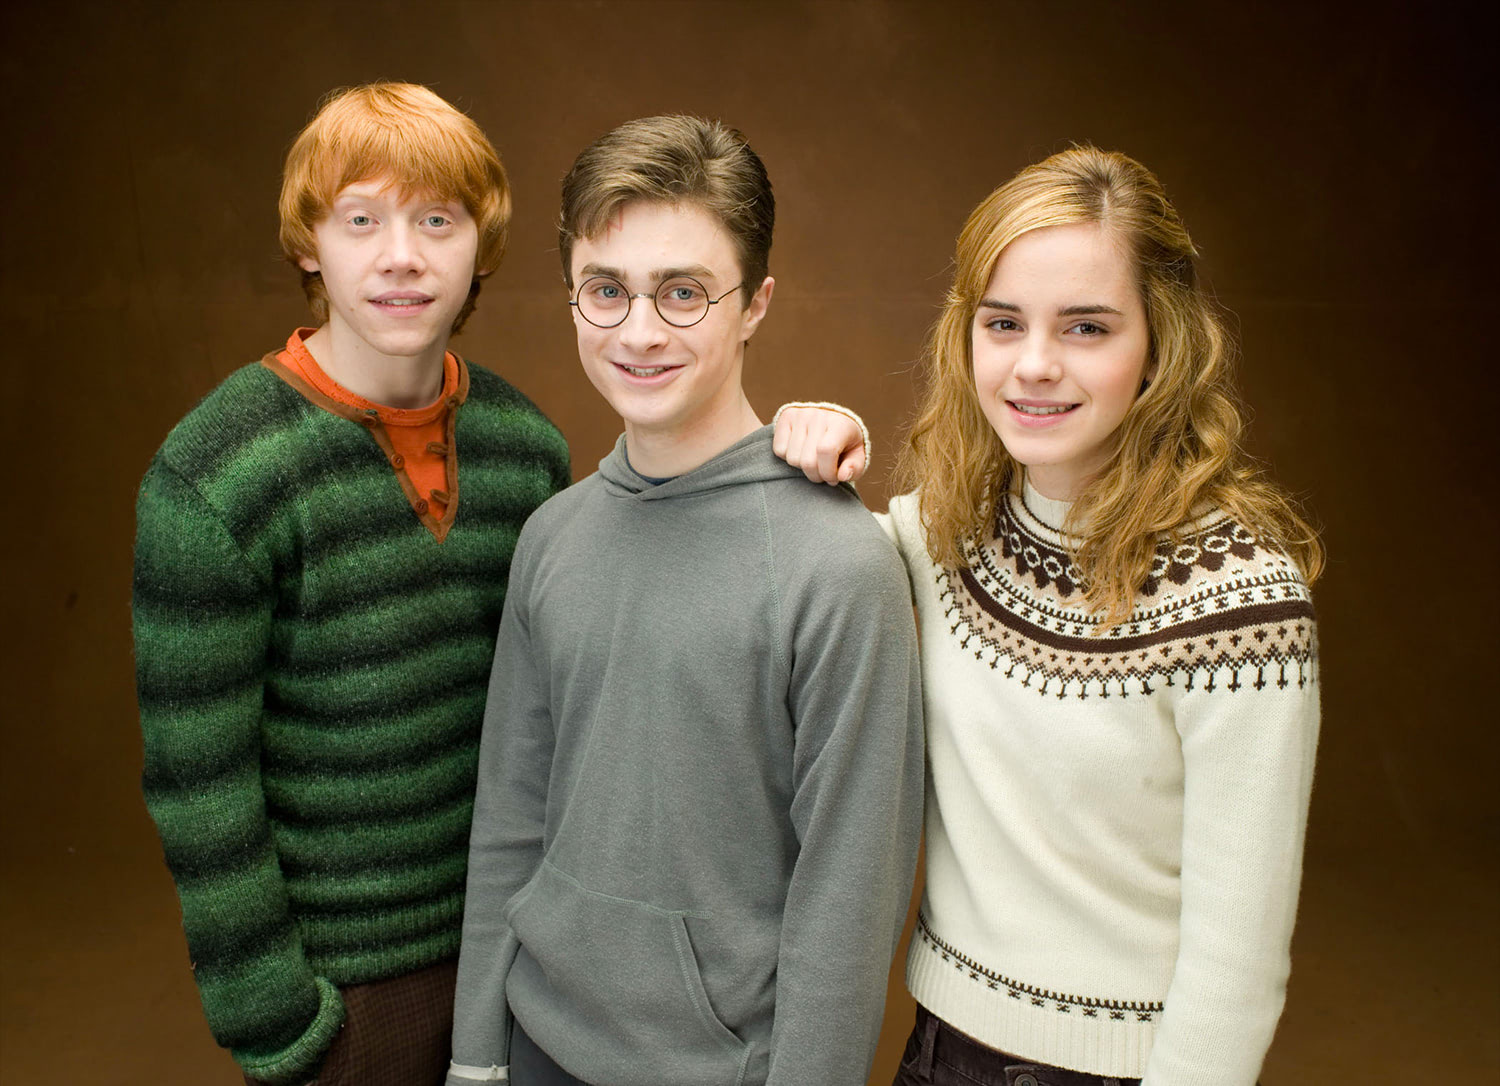 Portrait of Ron, Harry and Hermione